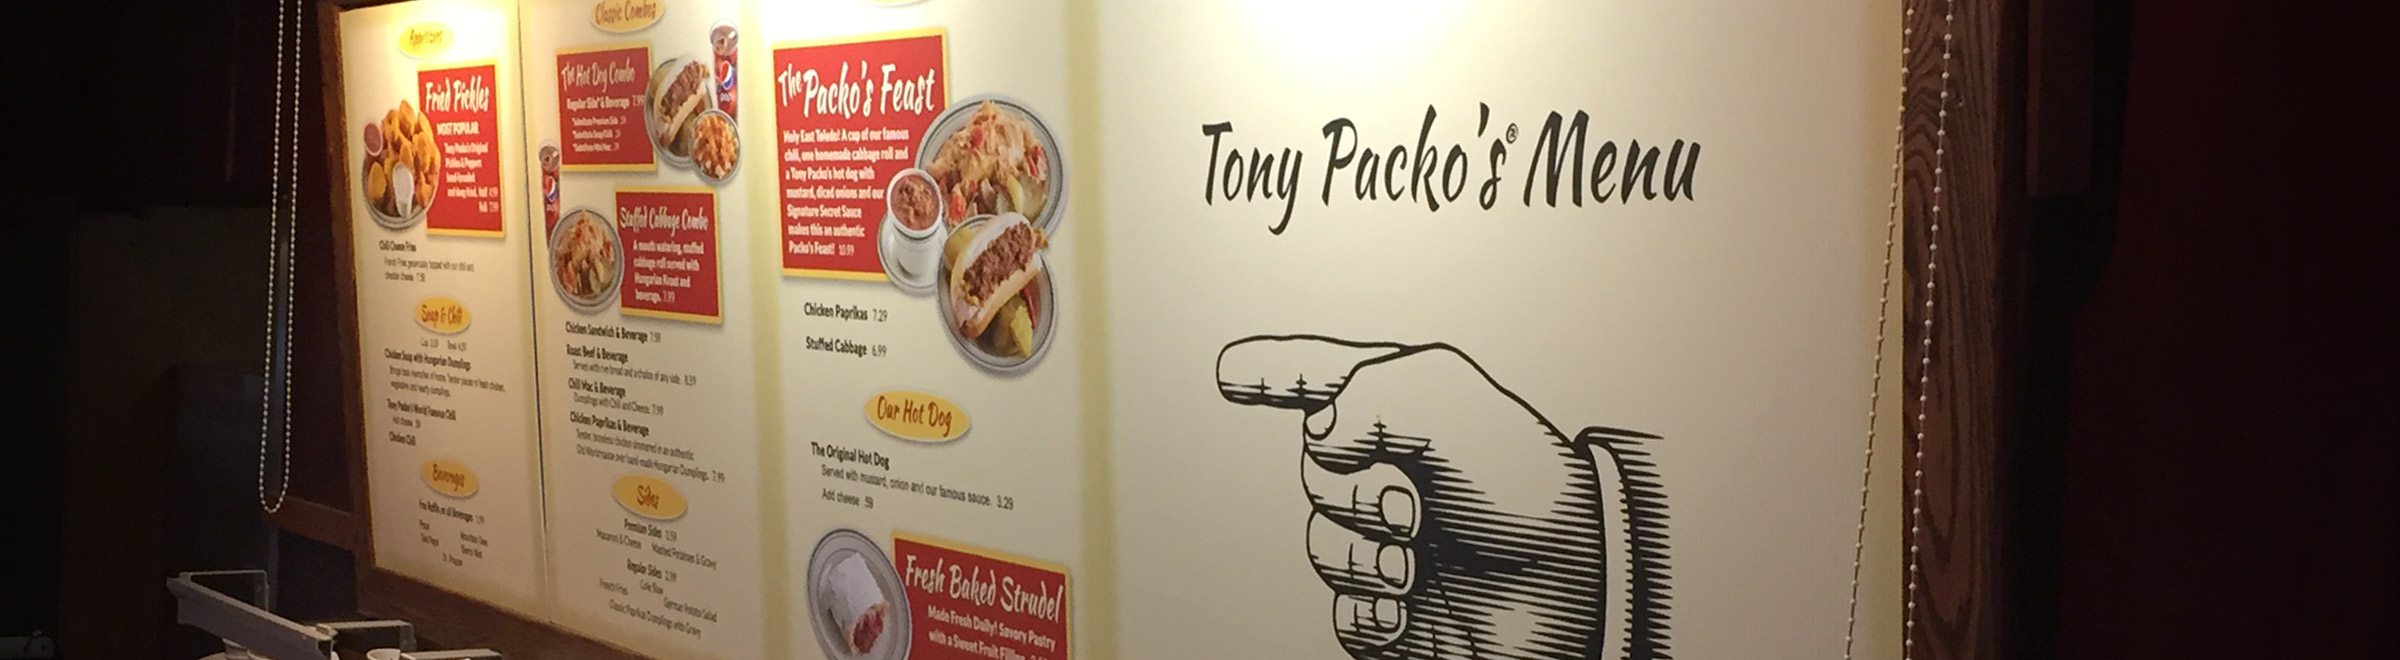 Tony Packo's Menu Board